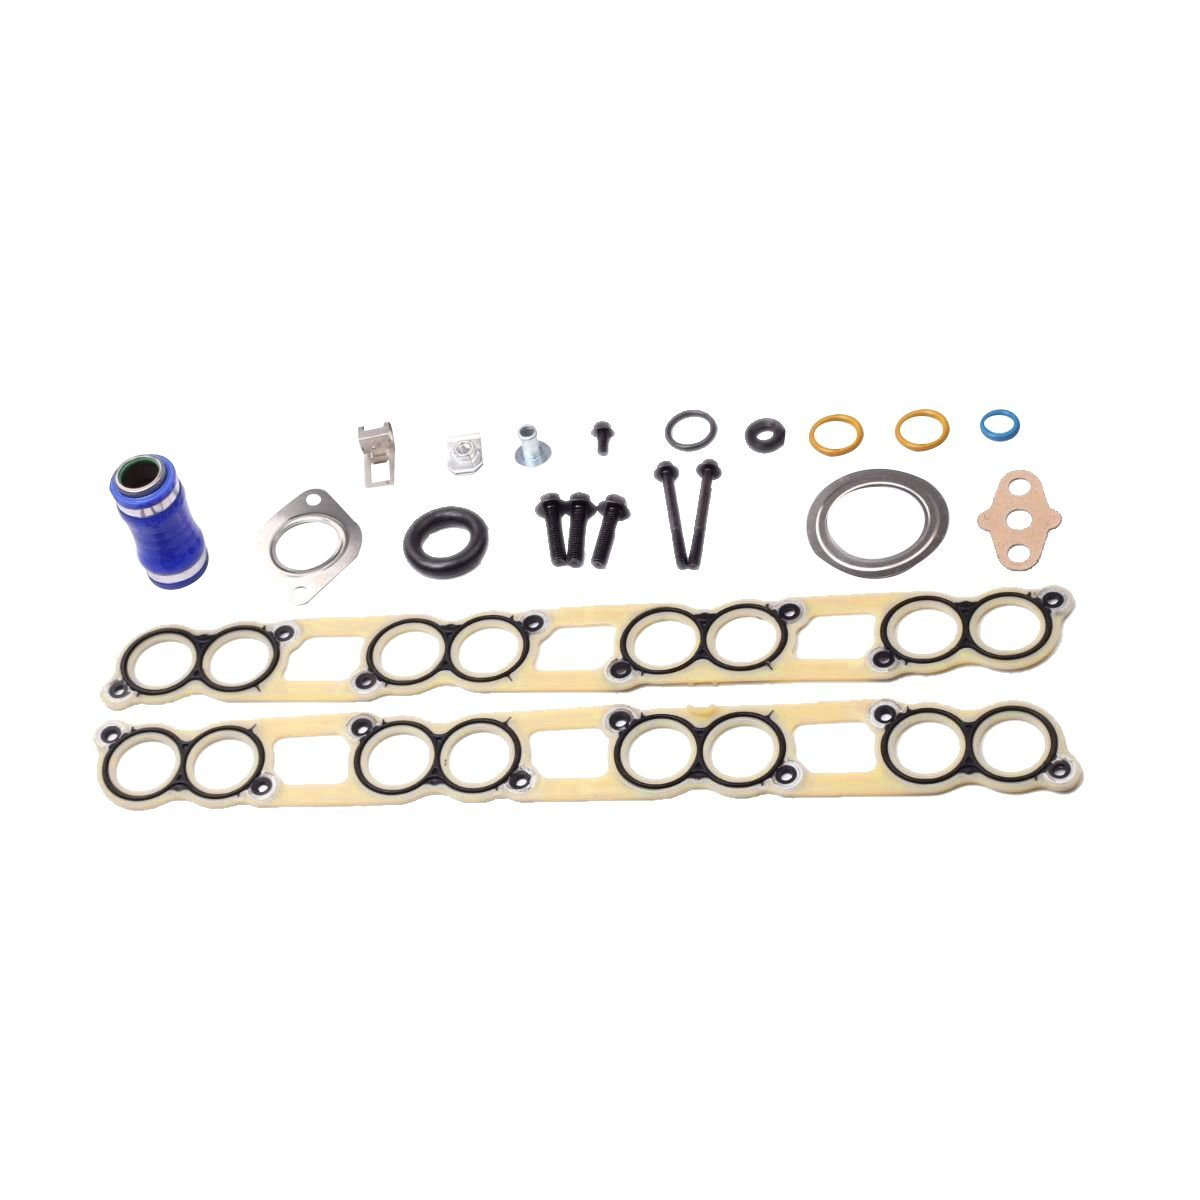 Power Stroke Diesel Turbo Fit For Ford F-250/350/450 6.0L V8 EGR Cooler Gasket Kit